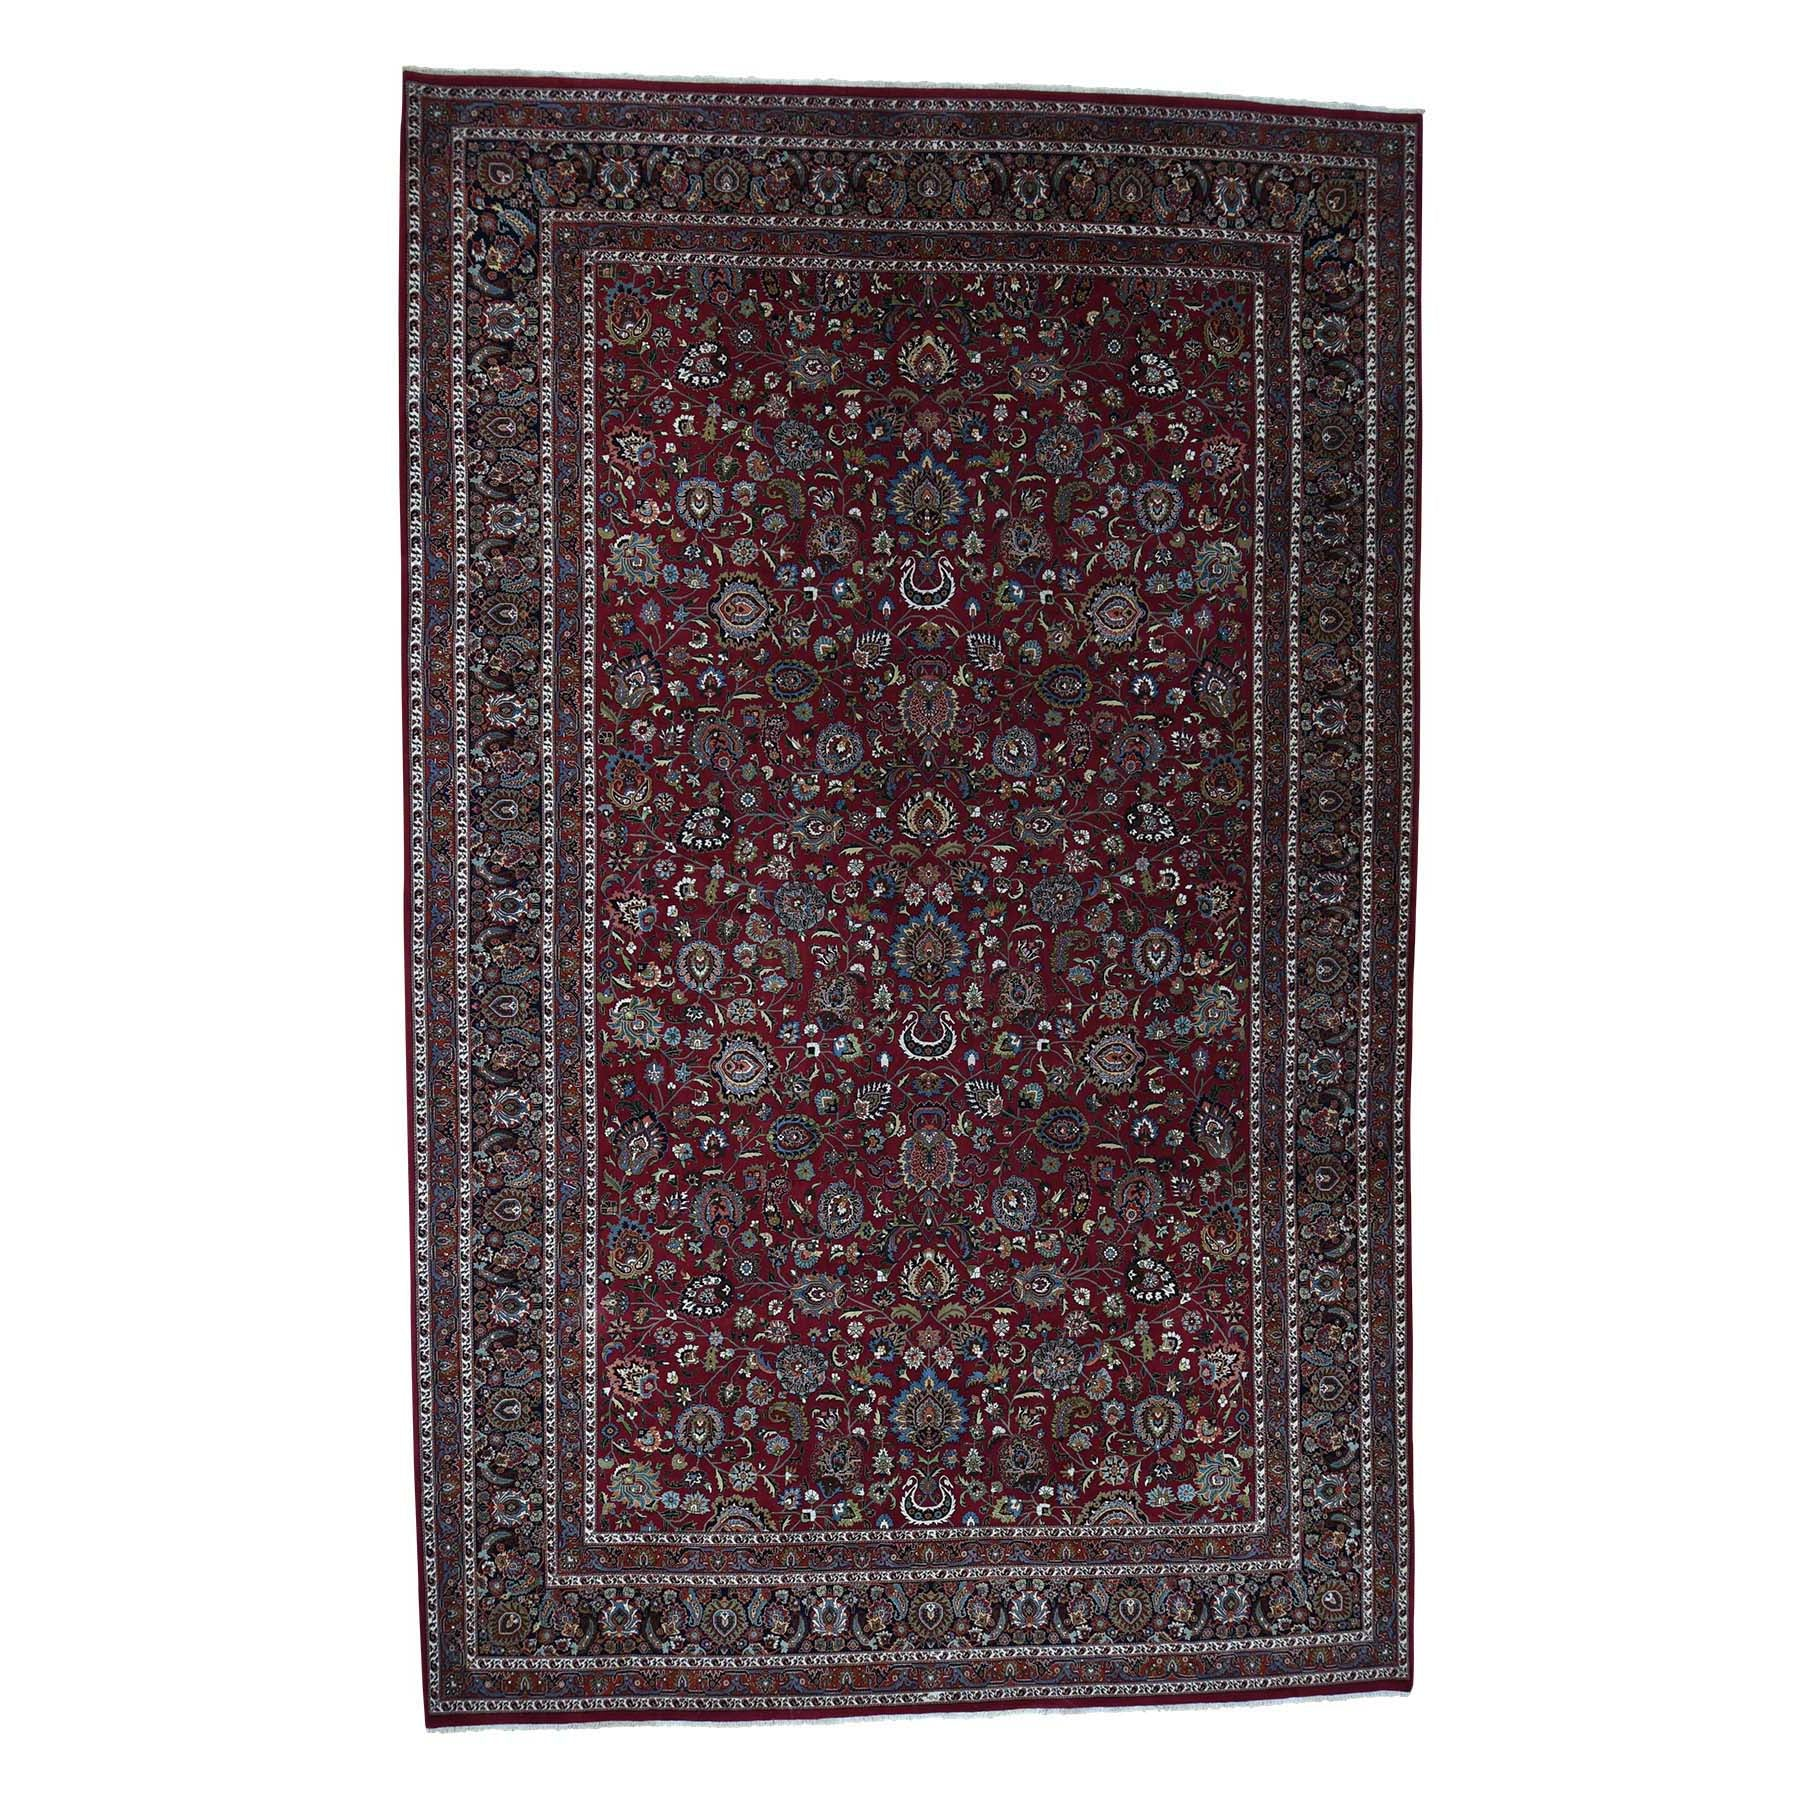 "Handmade Persian Rectangle Rug > Design# SH40206 > Size: 12'-0"" x 19'-0"" [ONLINE ONLY]"